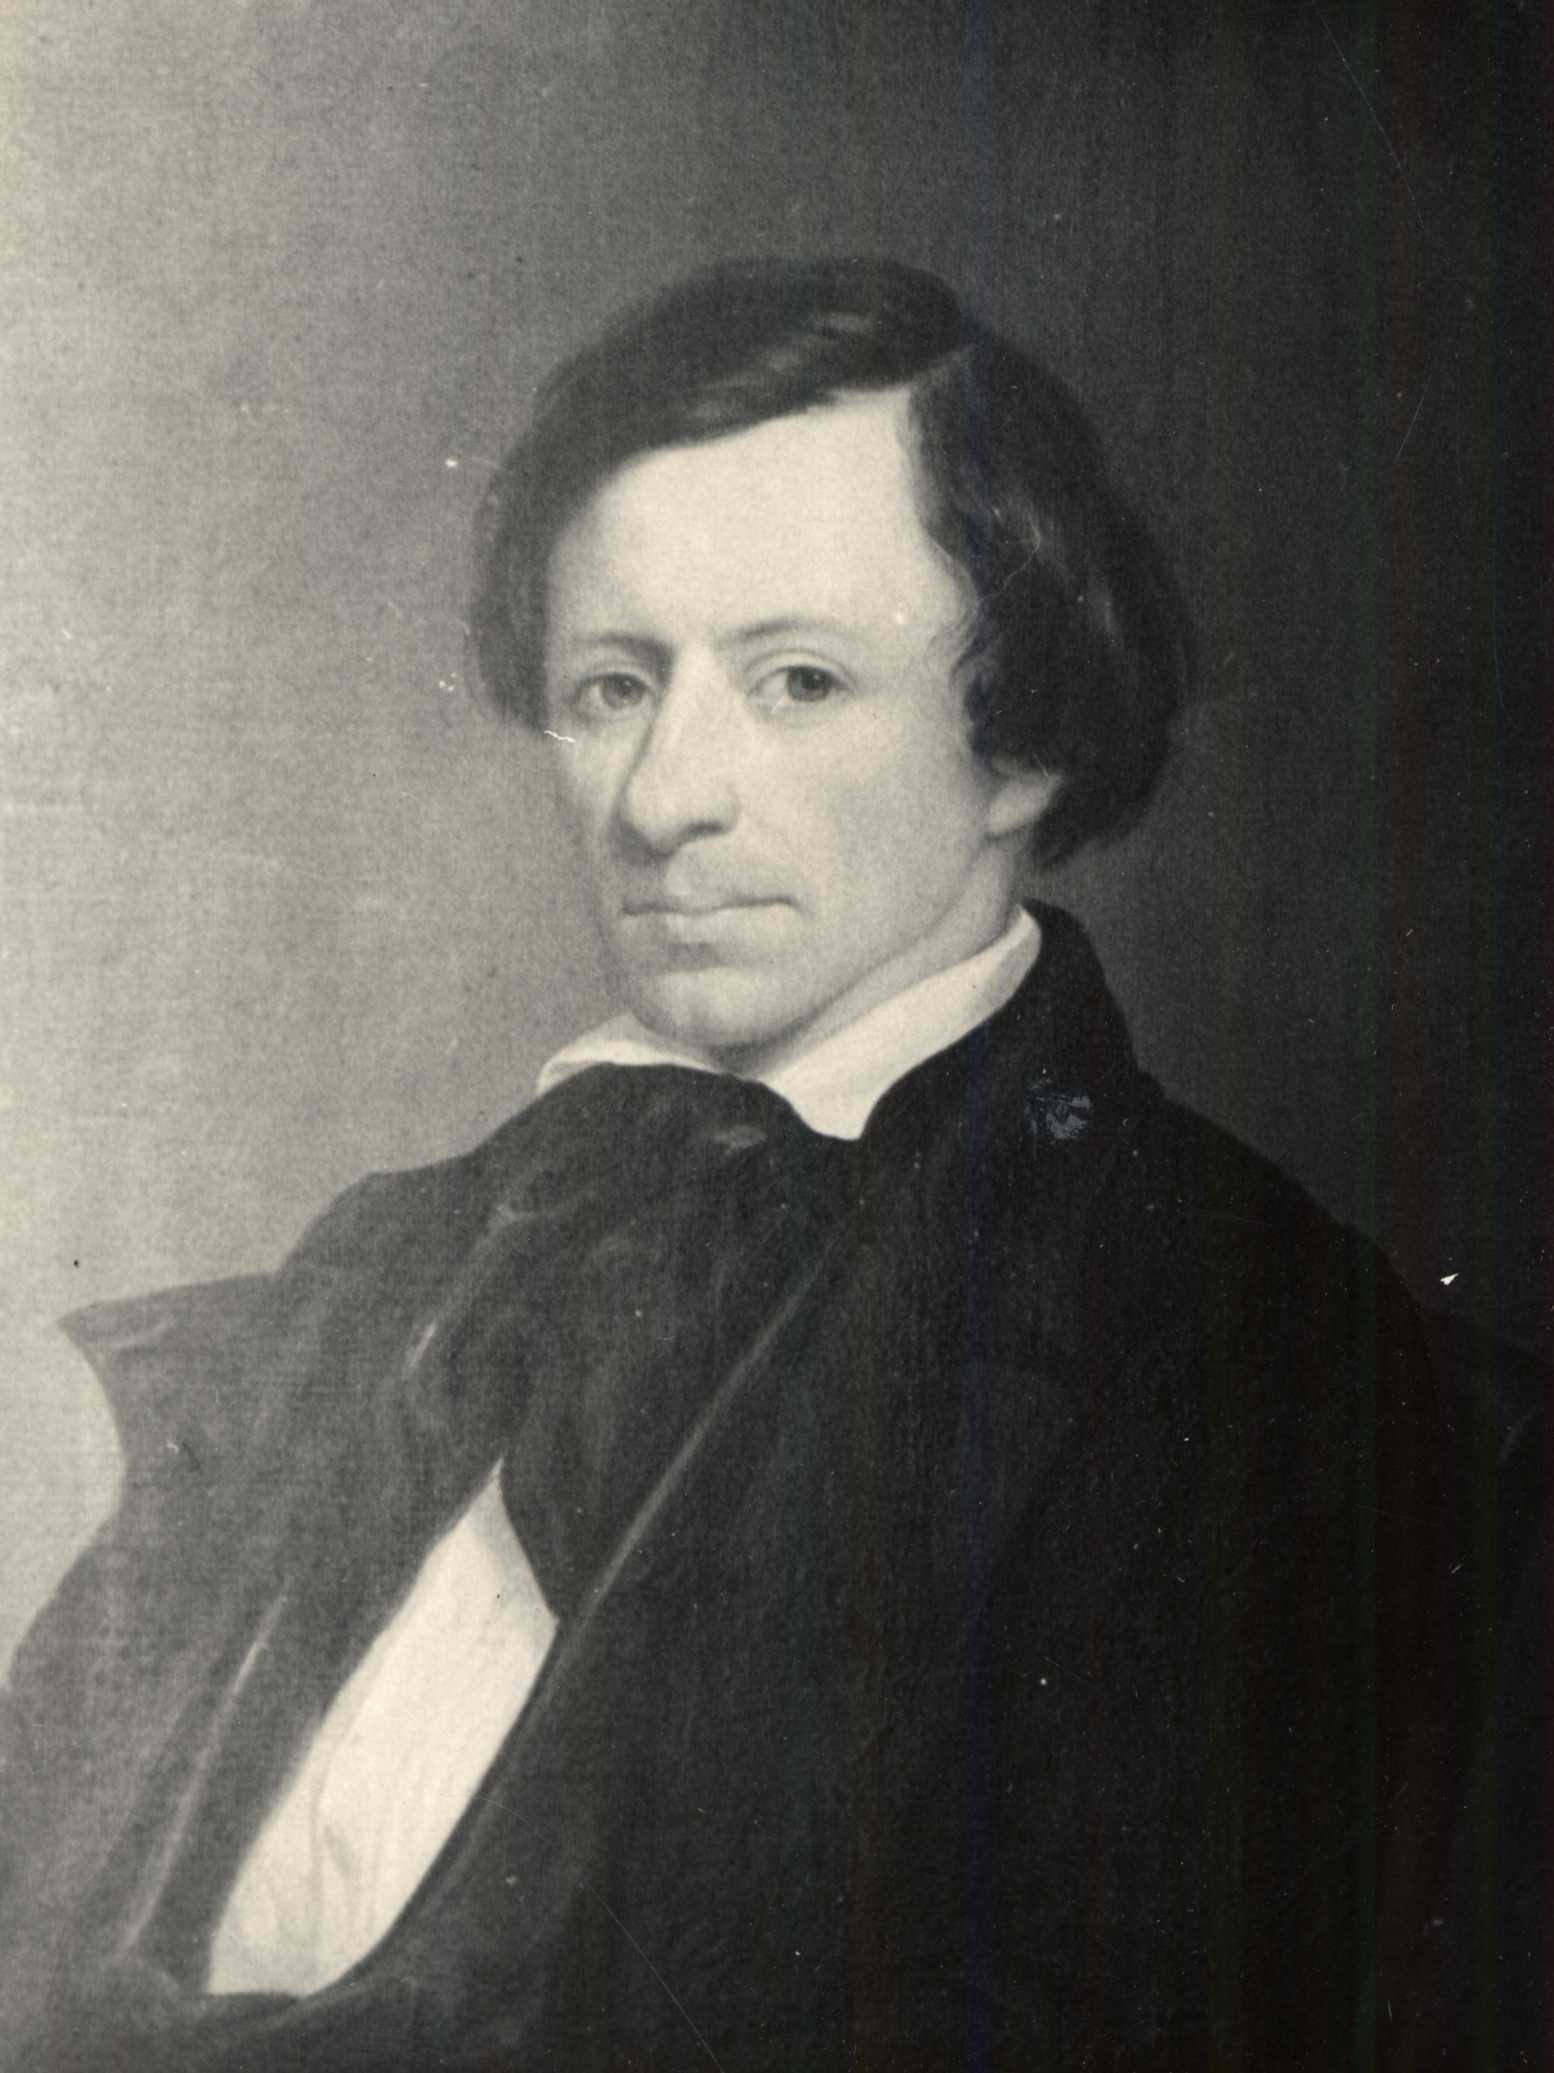 Peter Early Love, United States Congressman